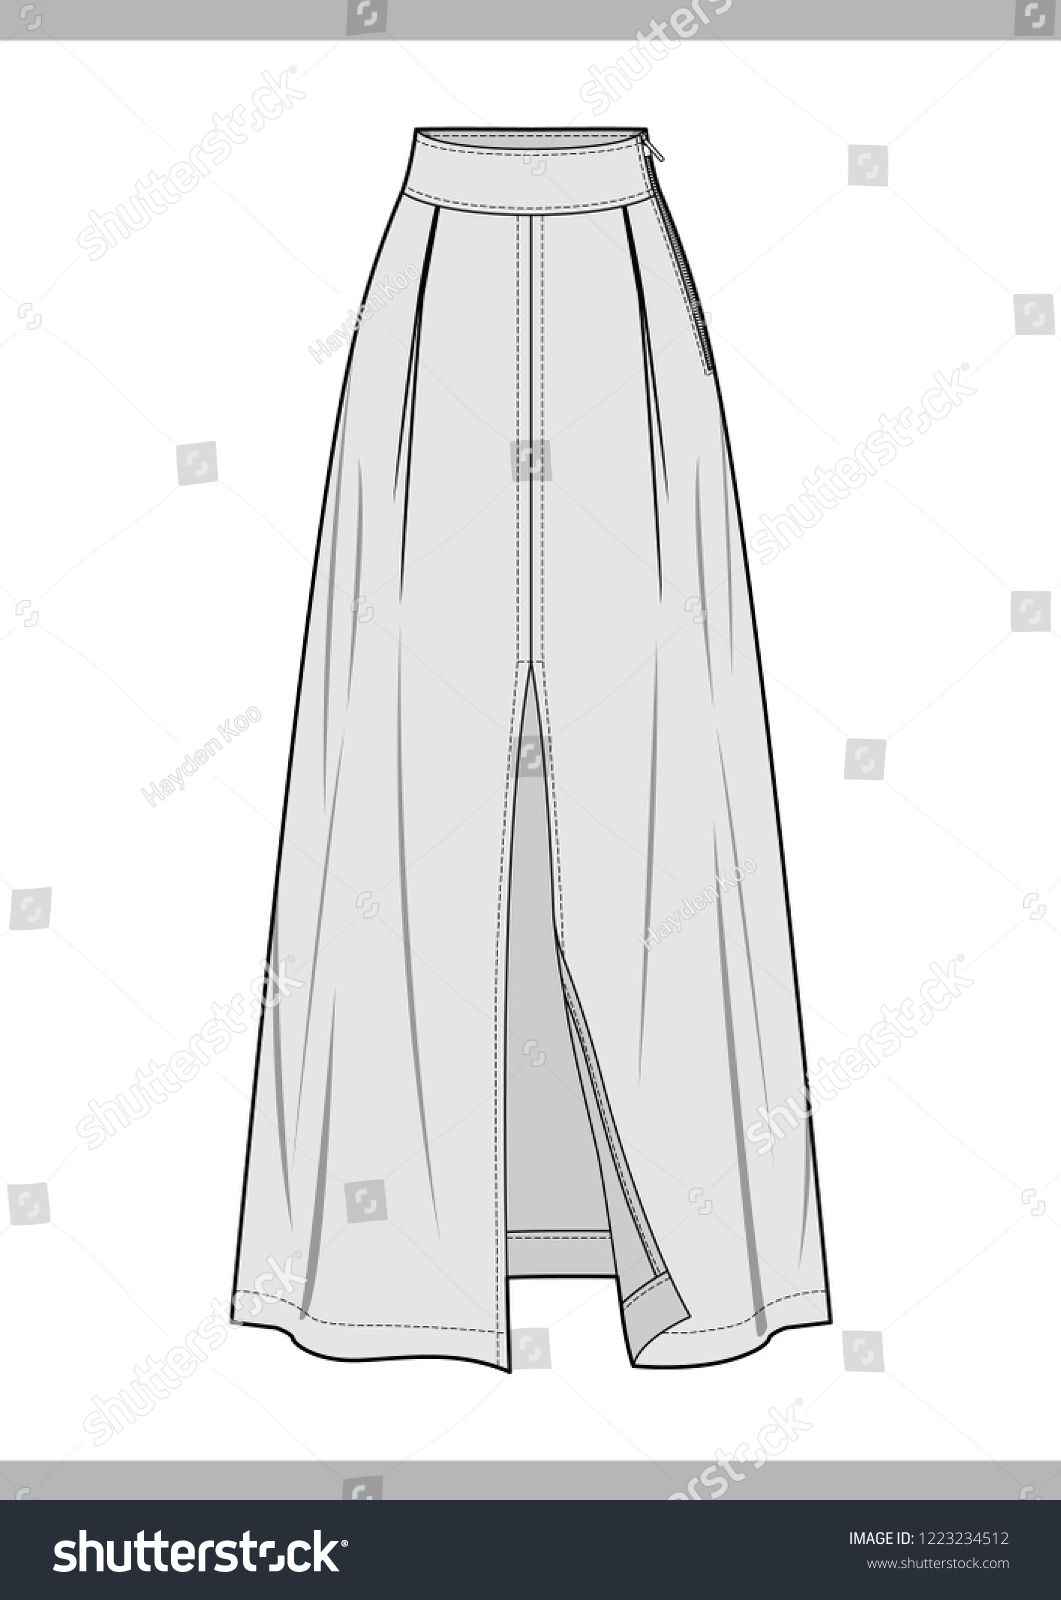 4403fa31b68f7a Find SKIRT Fashion technical drawings vector template stock vectors and royalty  free photos in HD. Explore millions of stock photos, images, illustrations,  ...